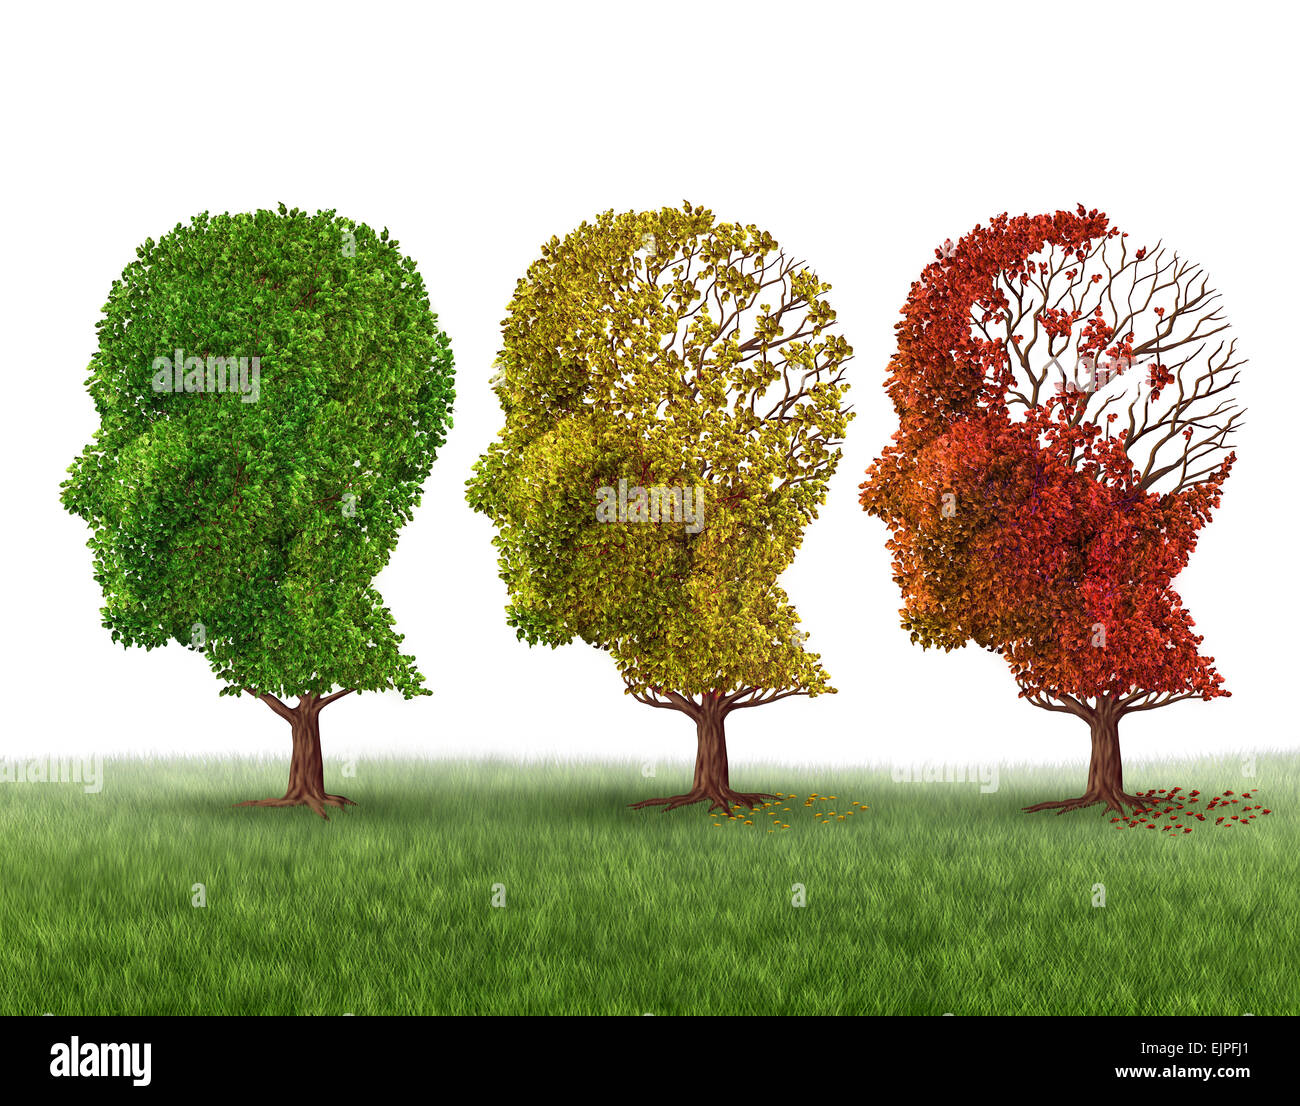 Memory loss and brain aging due to dementia and alzheimer\'s disease ...